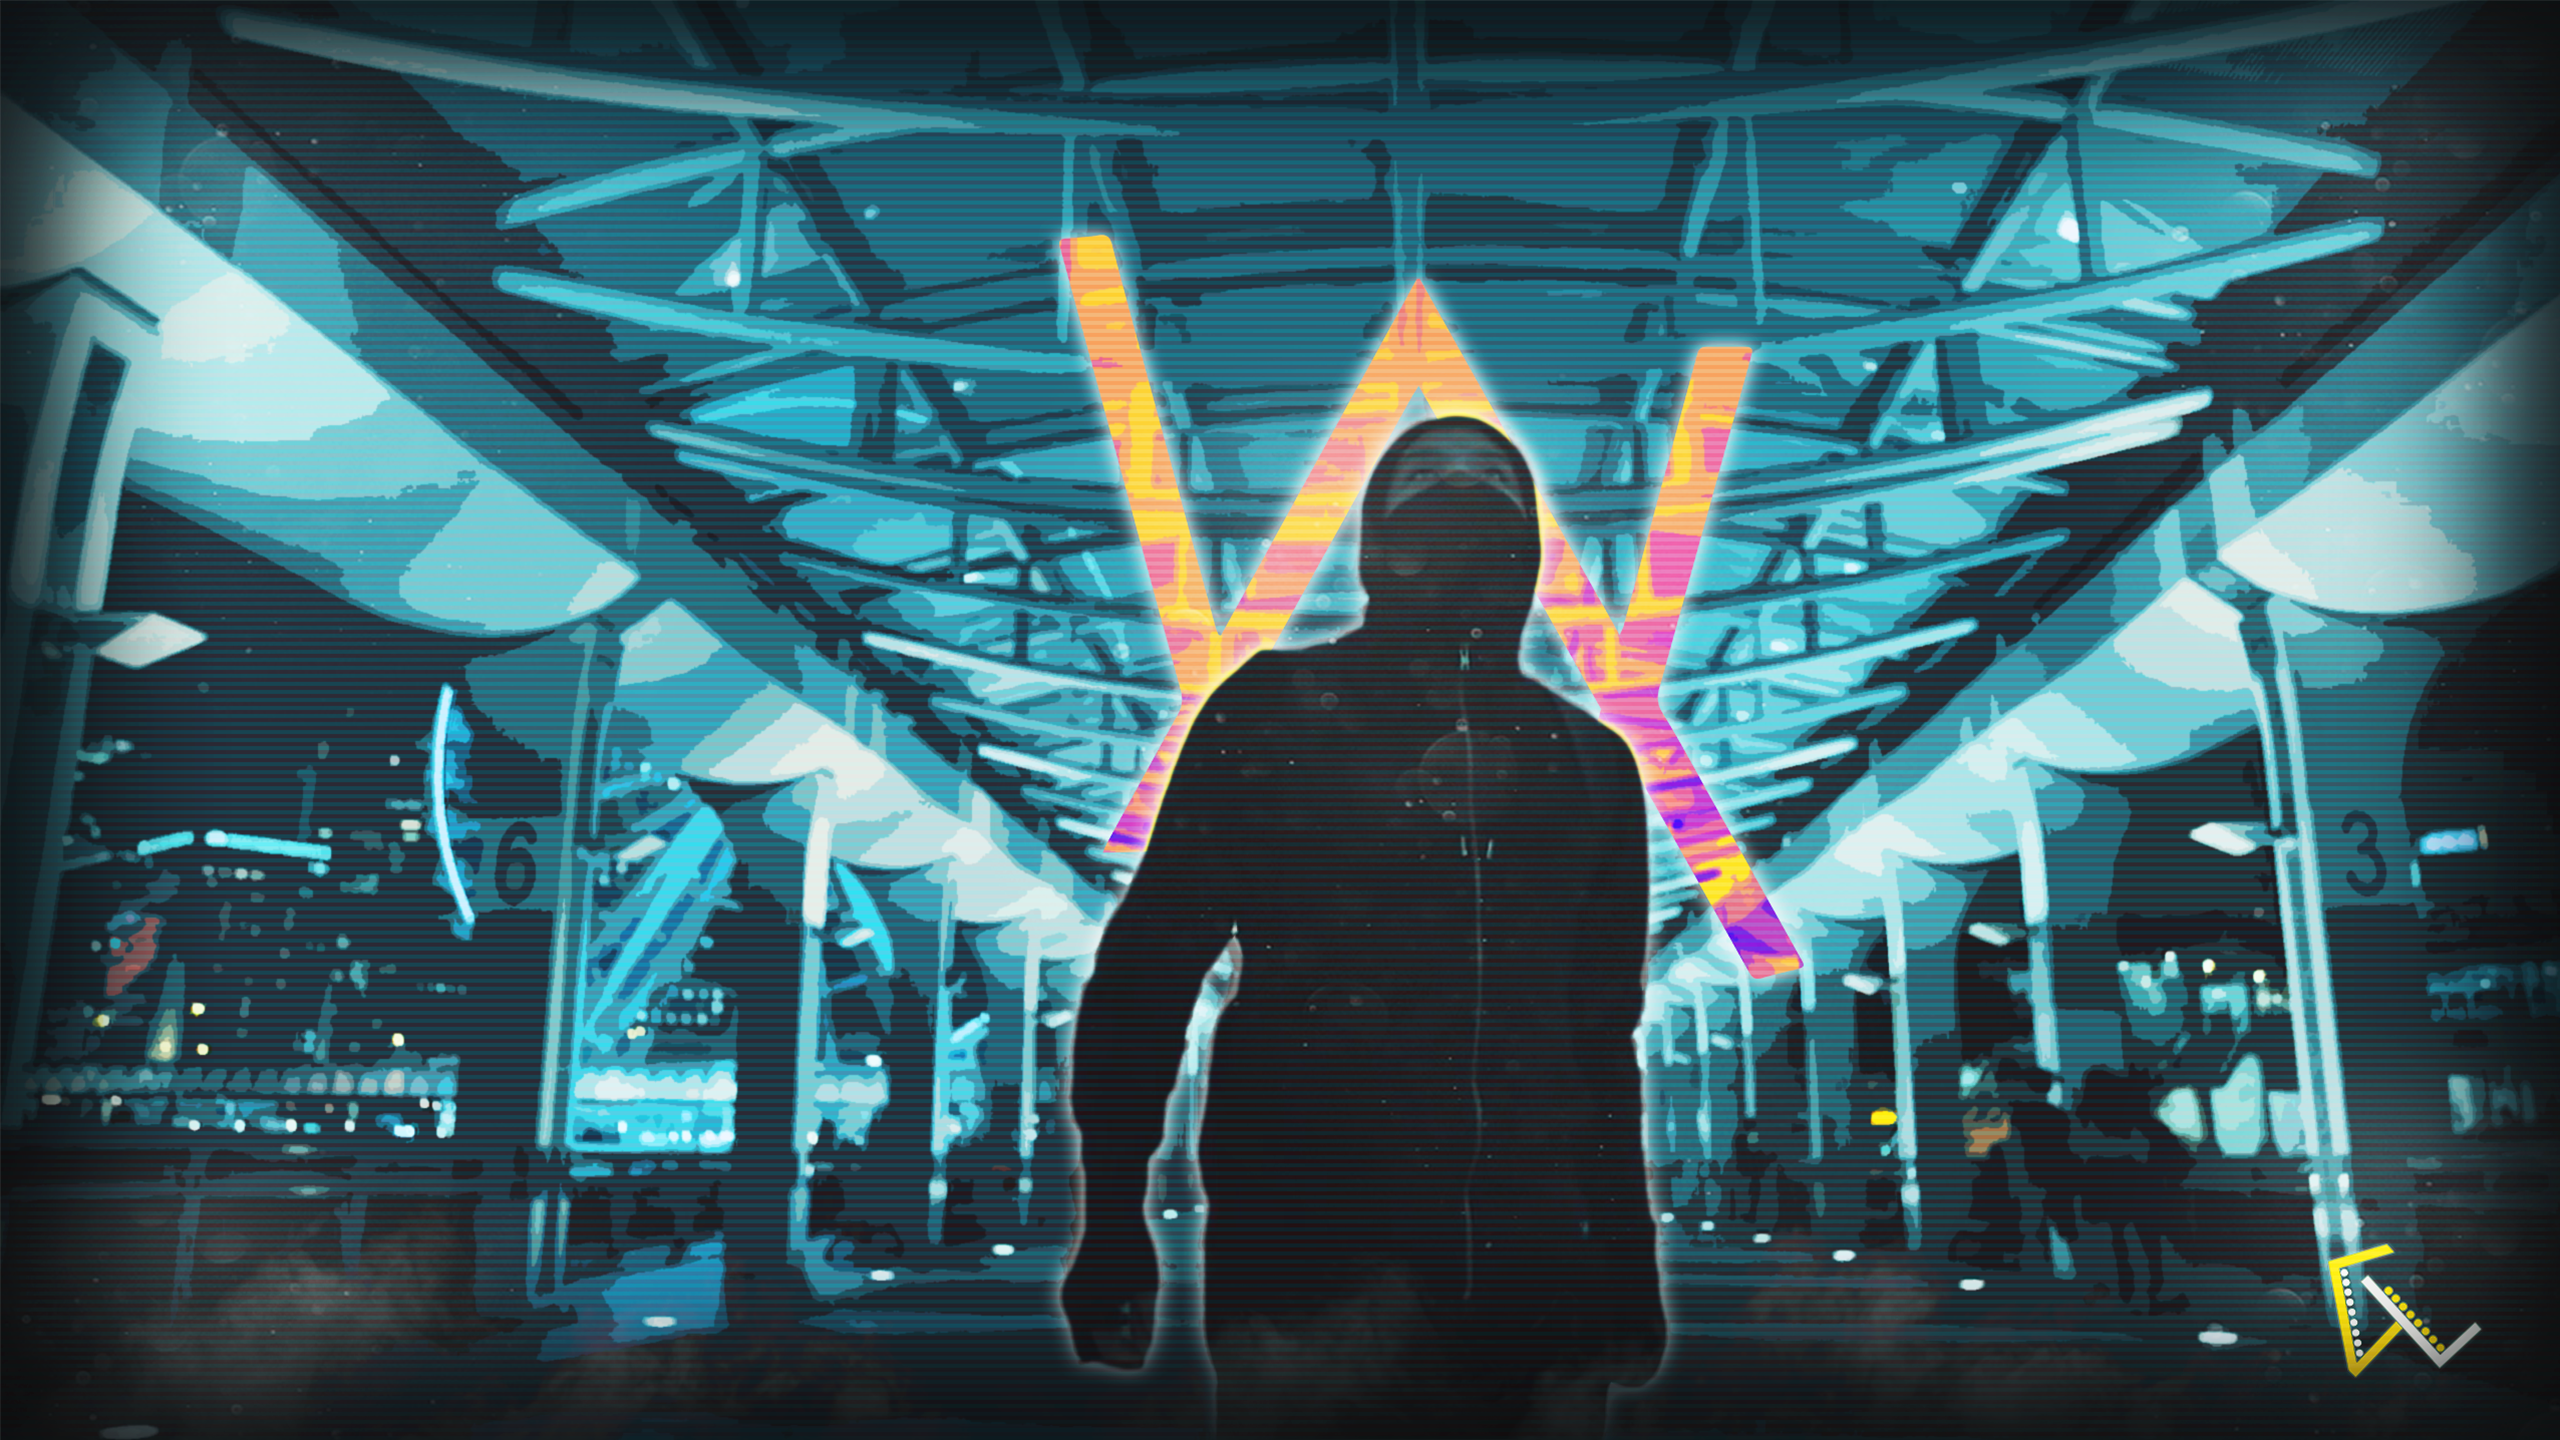 Alan Walker Hd Wallpaper 2560x1440